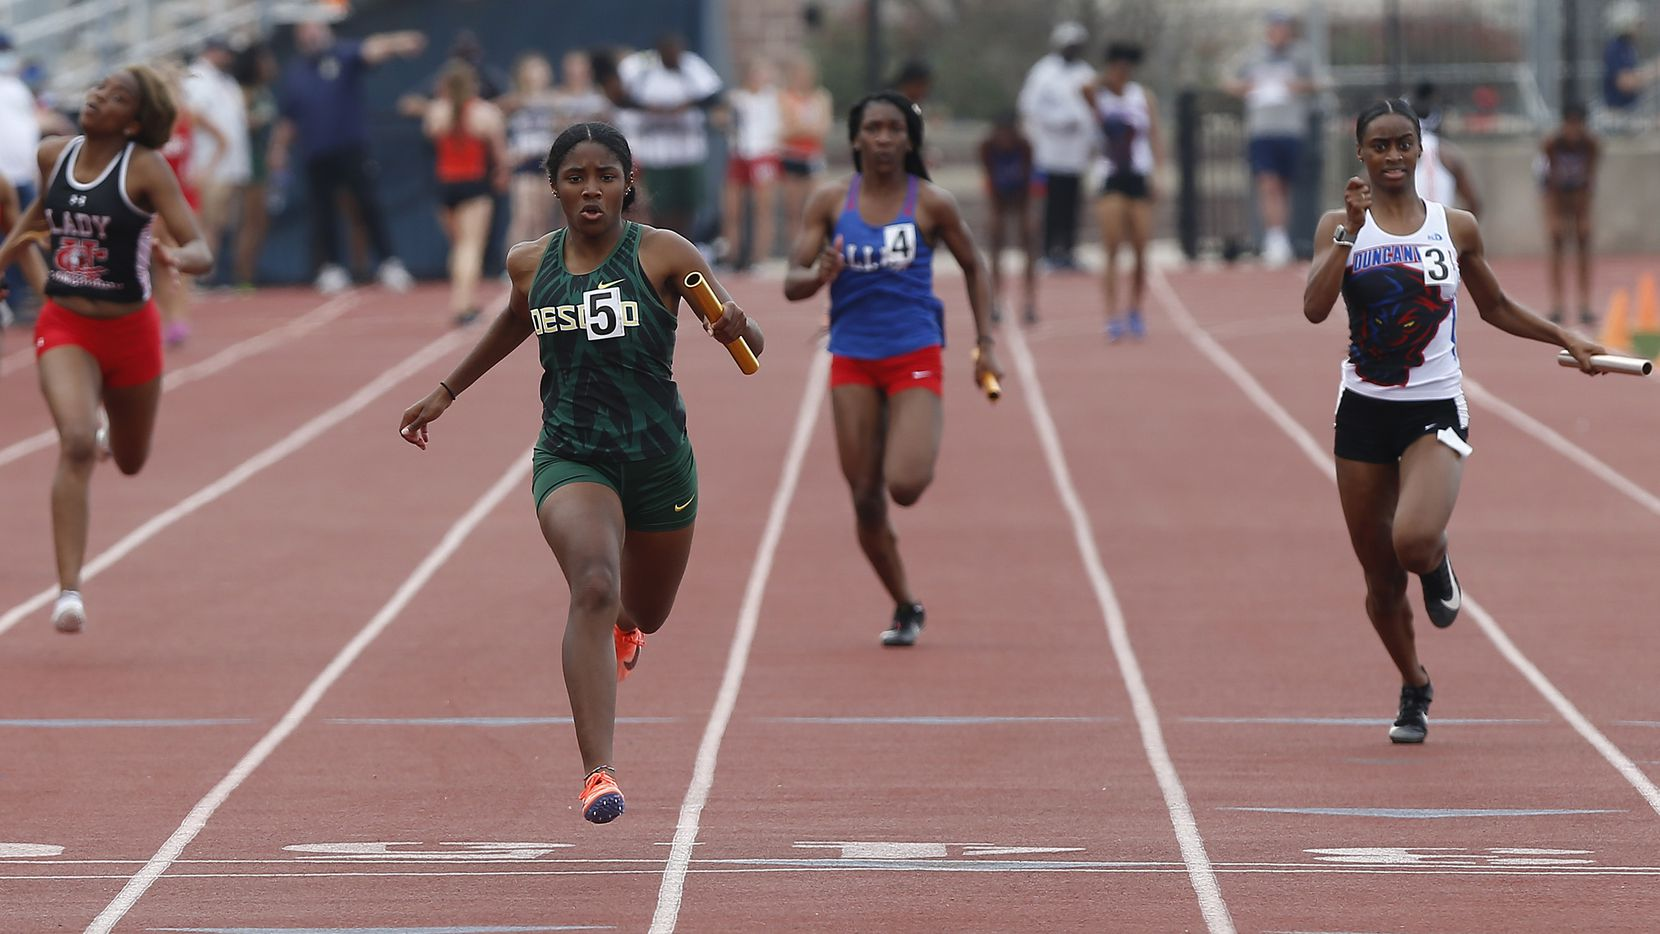 Mia Abraham (center) crosses the finish line first for DeSoto in the girls 4x100-meter relay at the Jesuit-Sheaner Relays on Saturday.